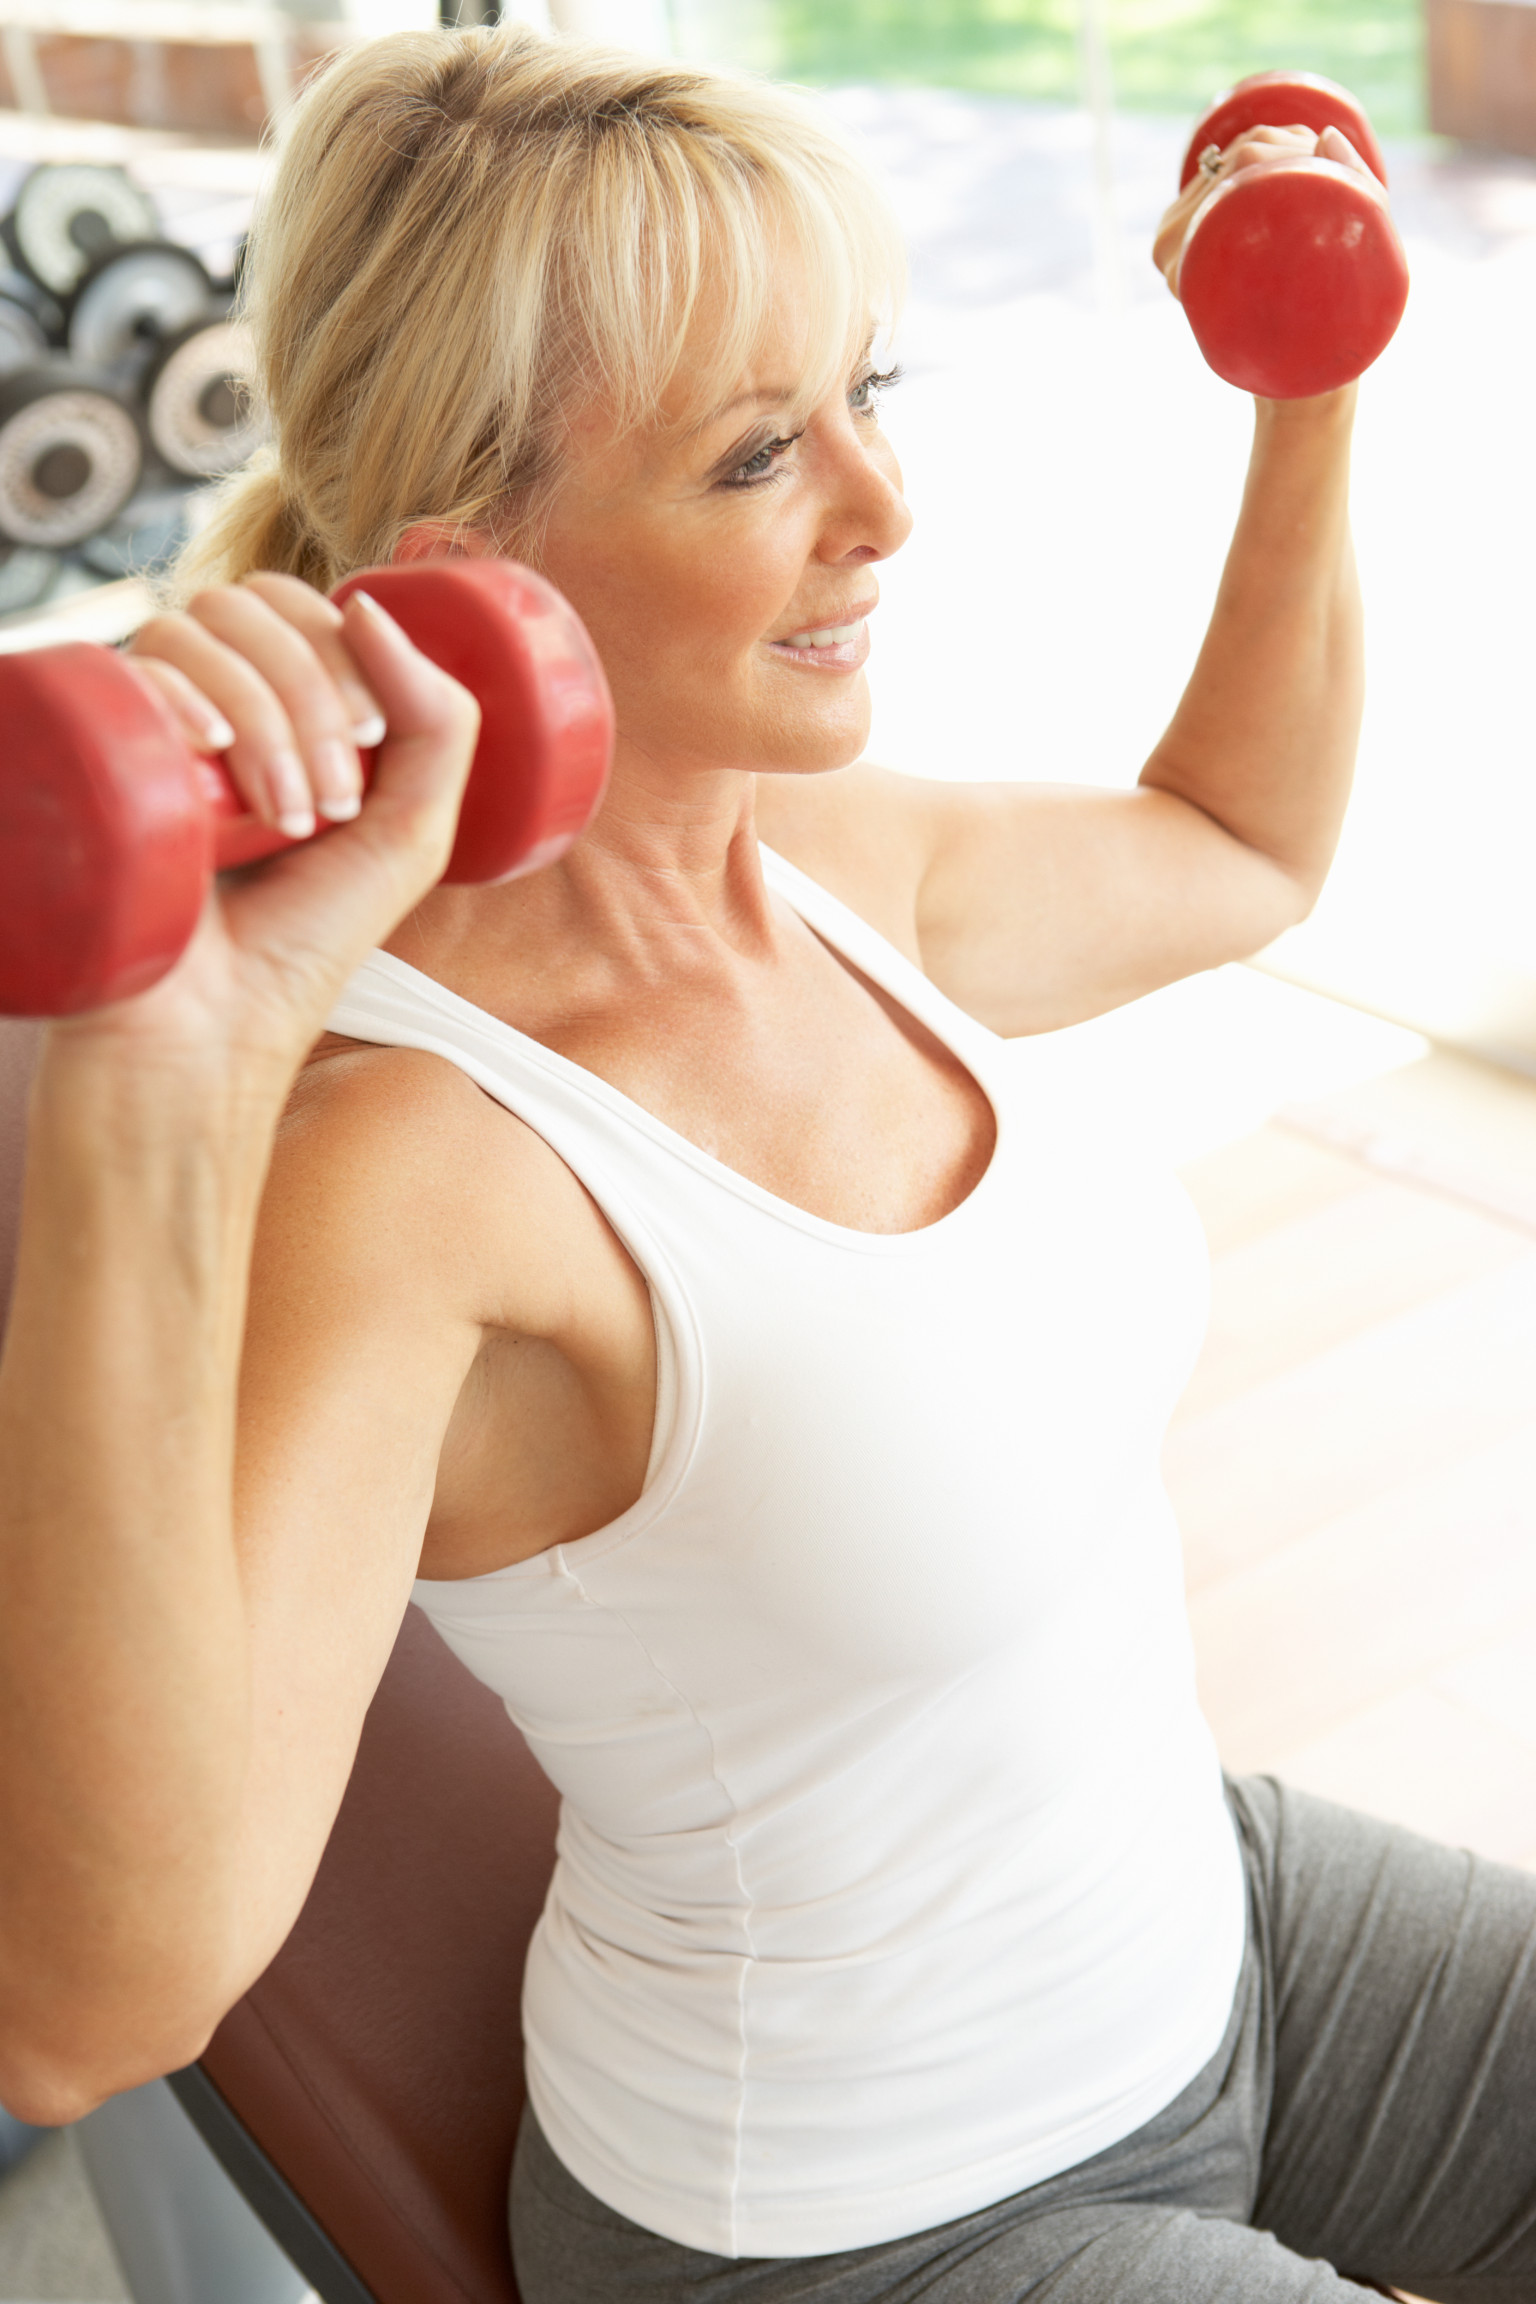 How Women Can Stay Fit During Menopause And Beyond | HuffPost